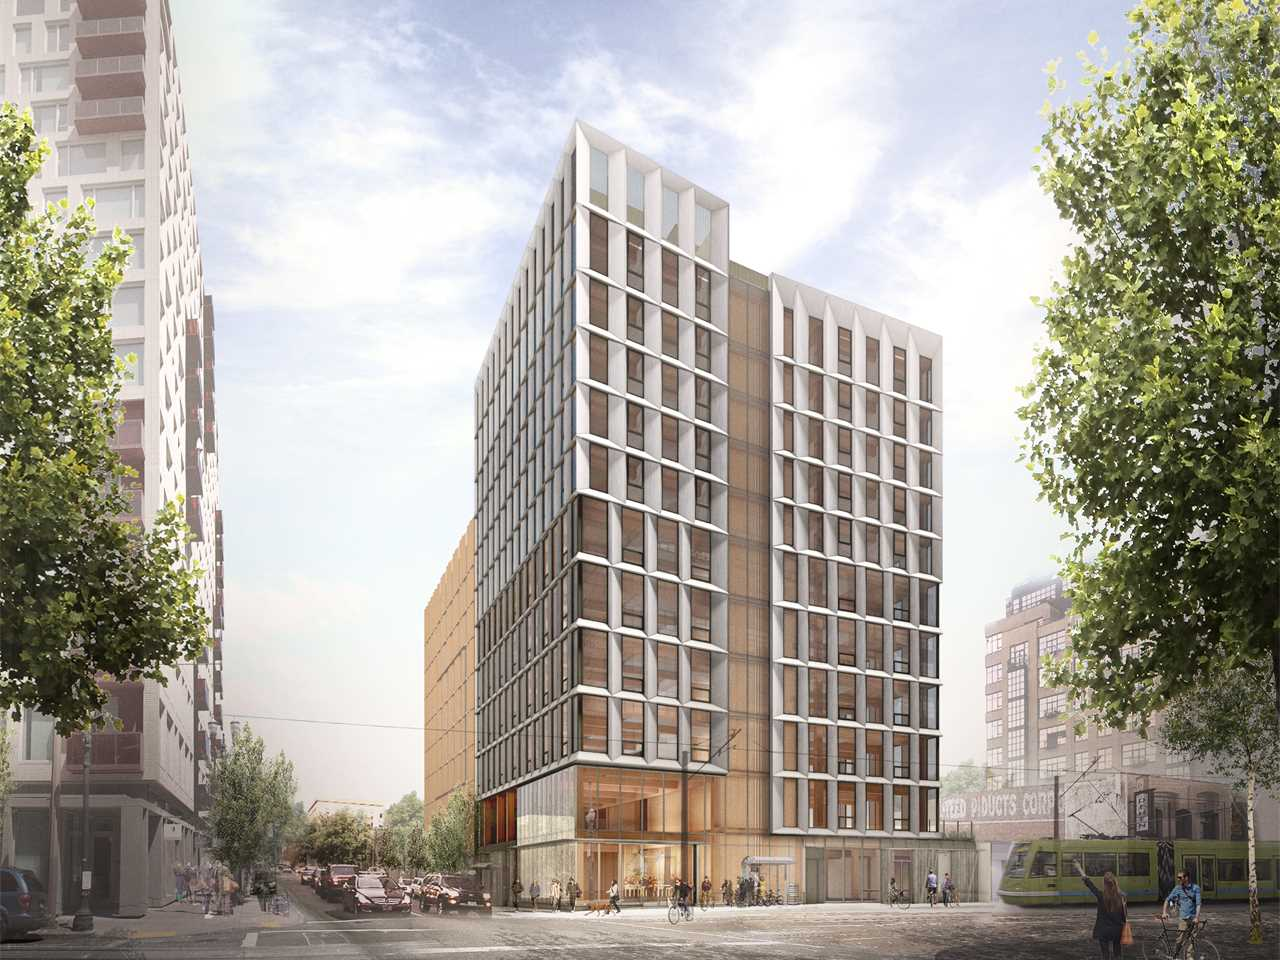 All-timber high-rise load-bearing structure, Portland, OR, USA